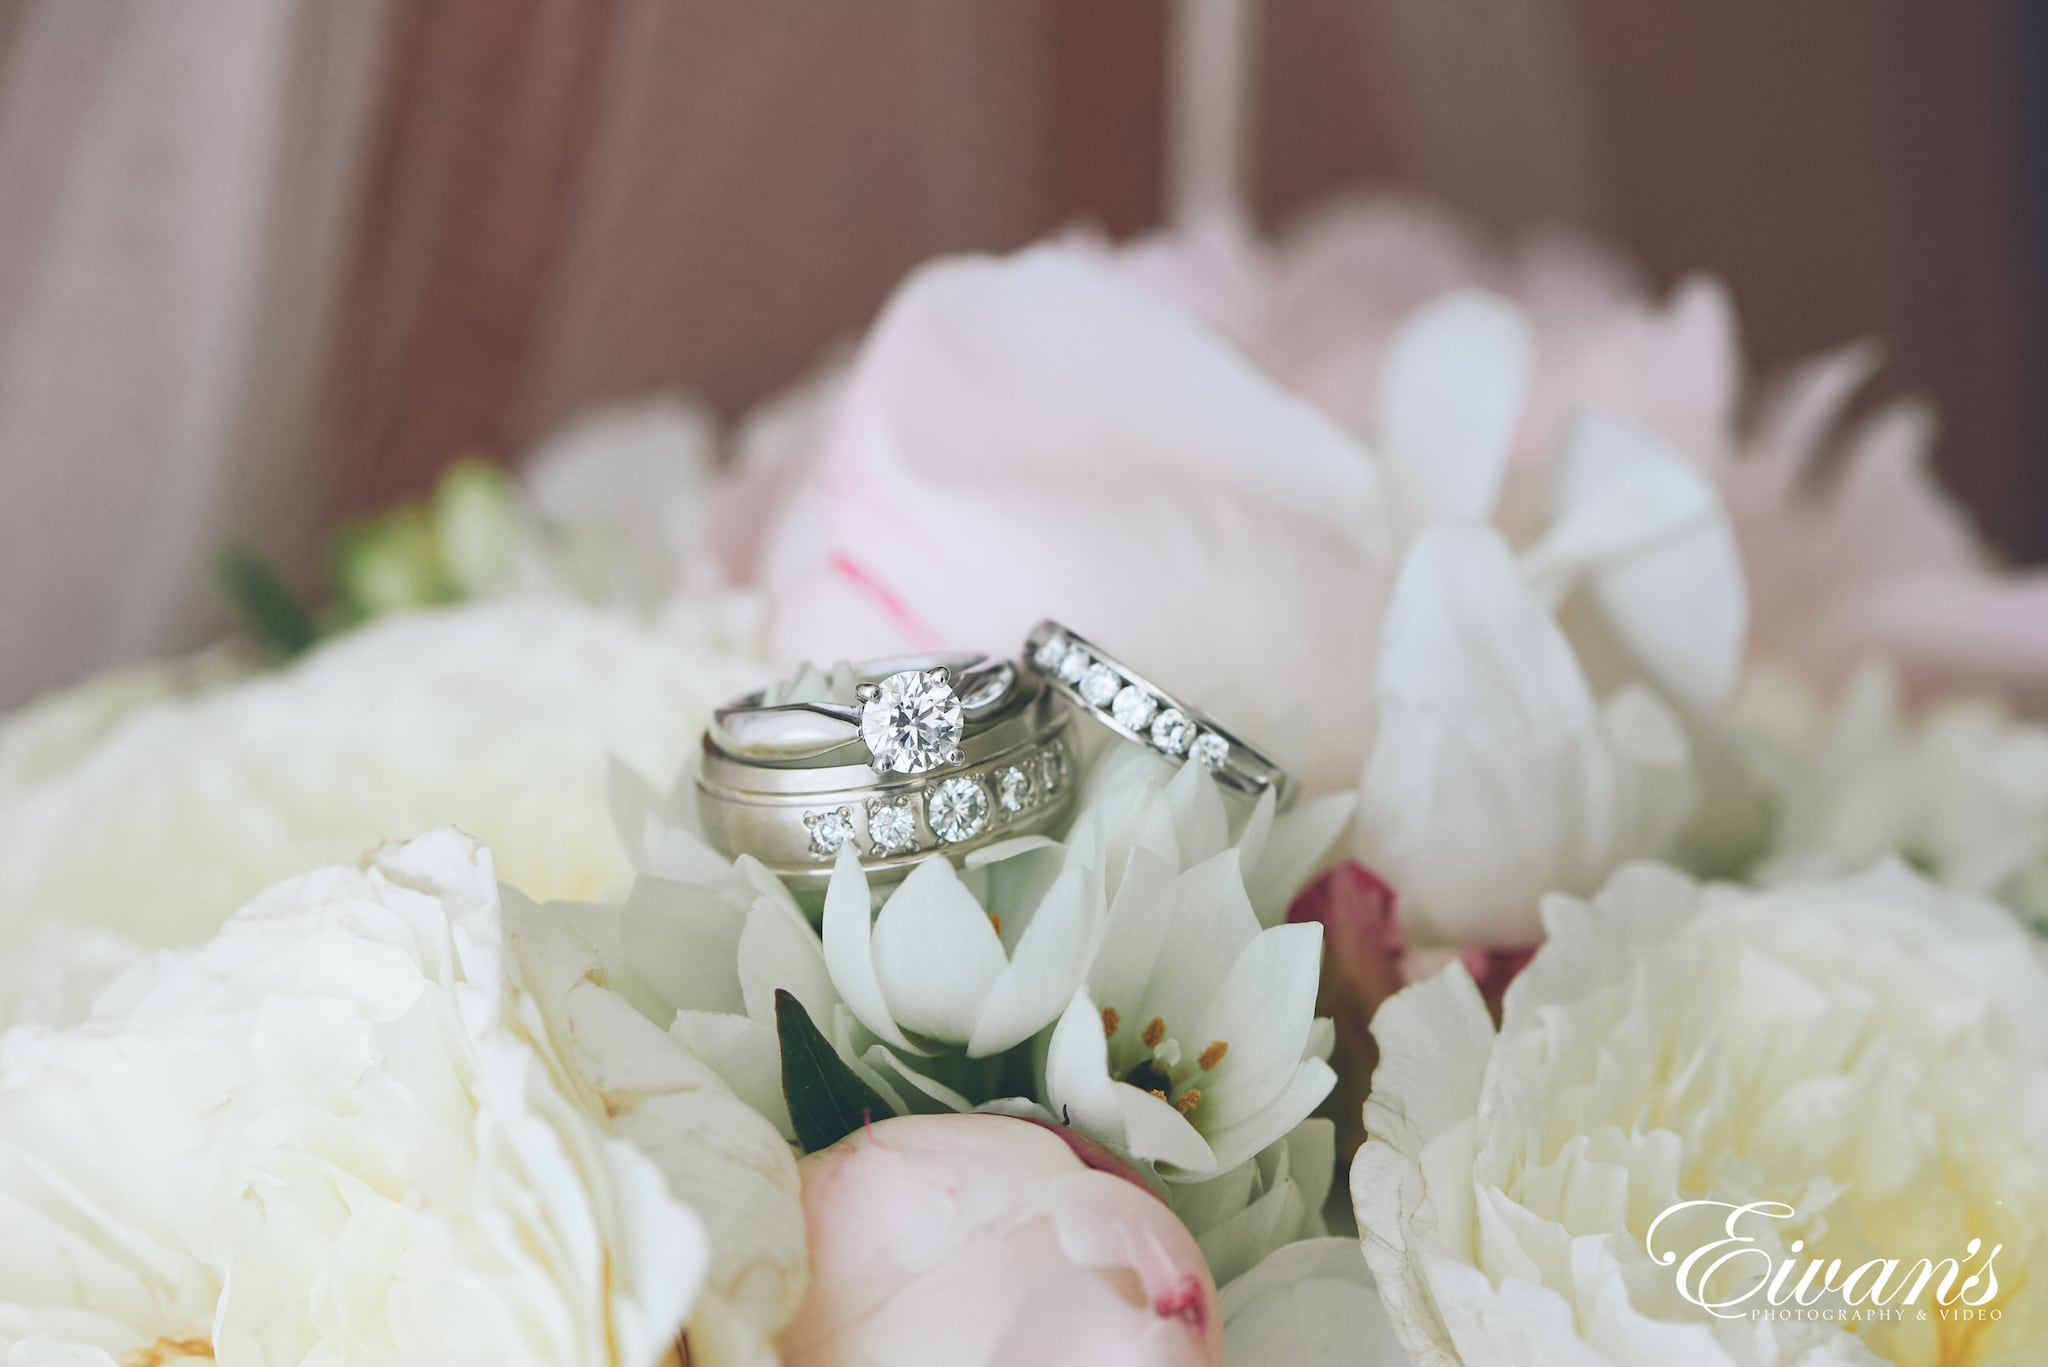 silver diamond ring on white flower petals